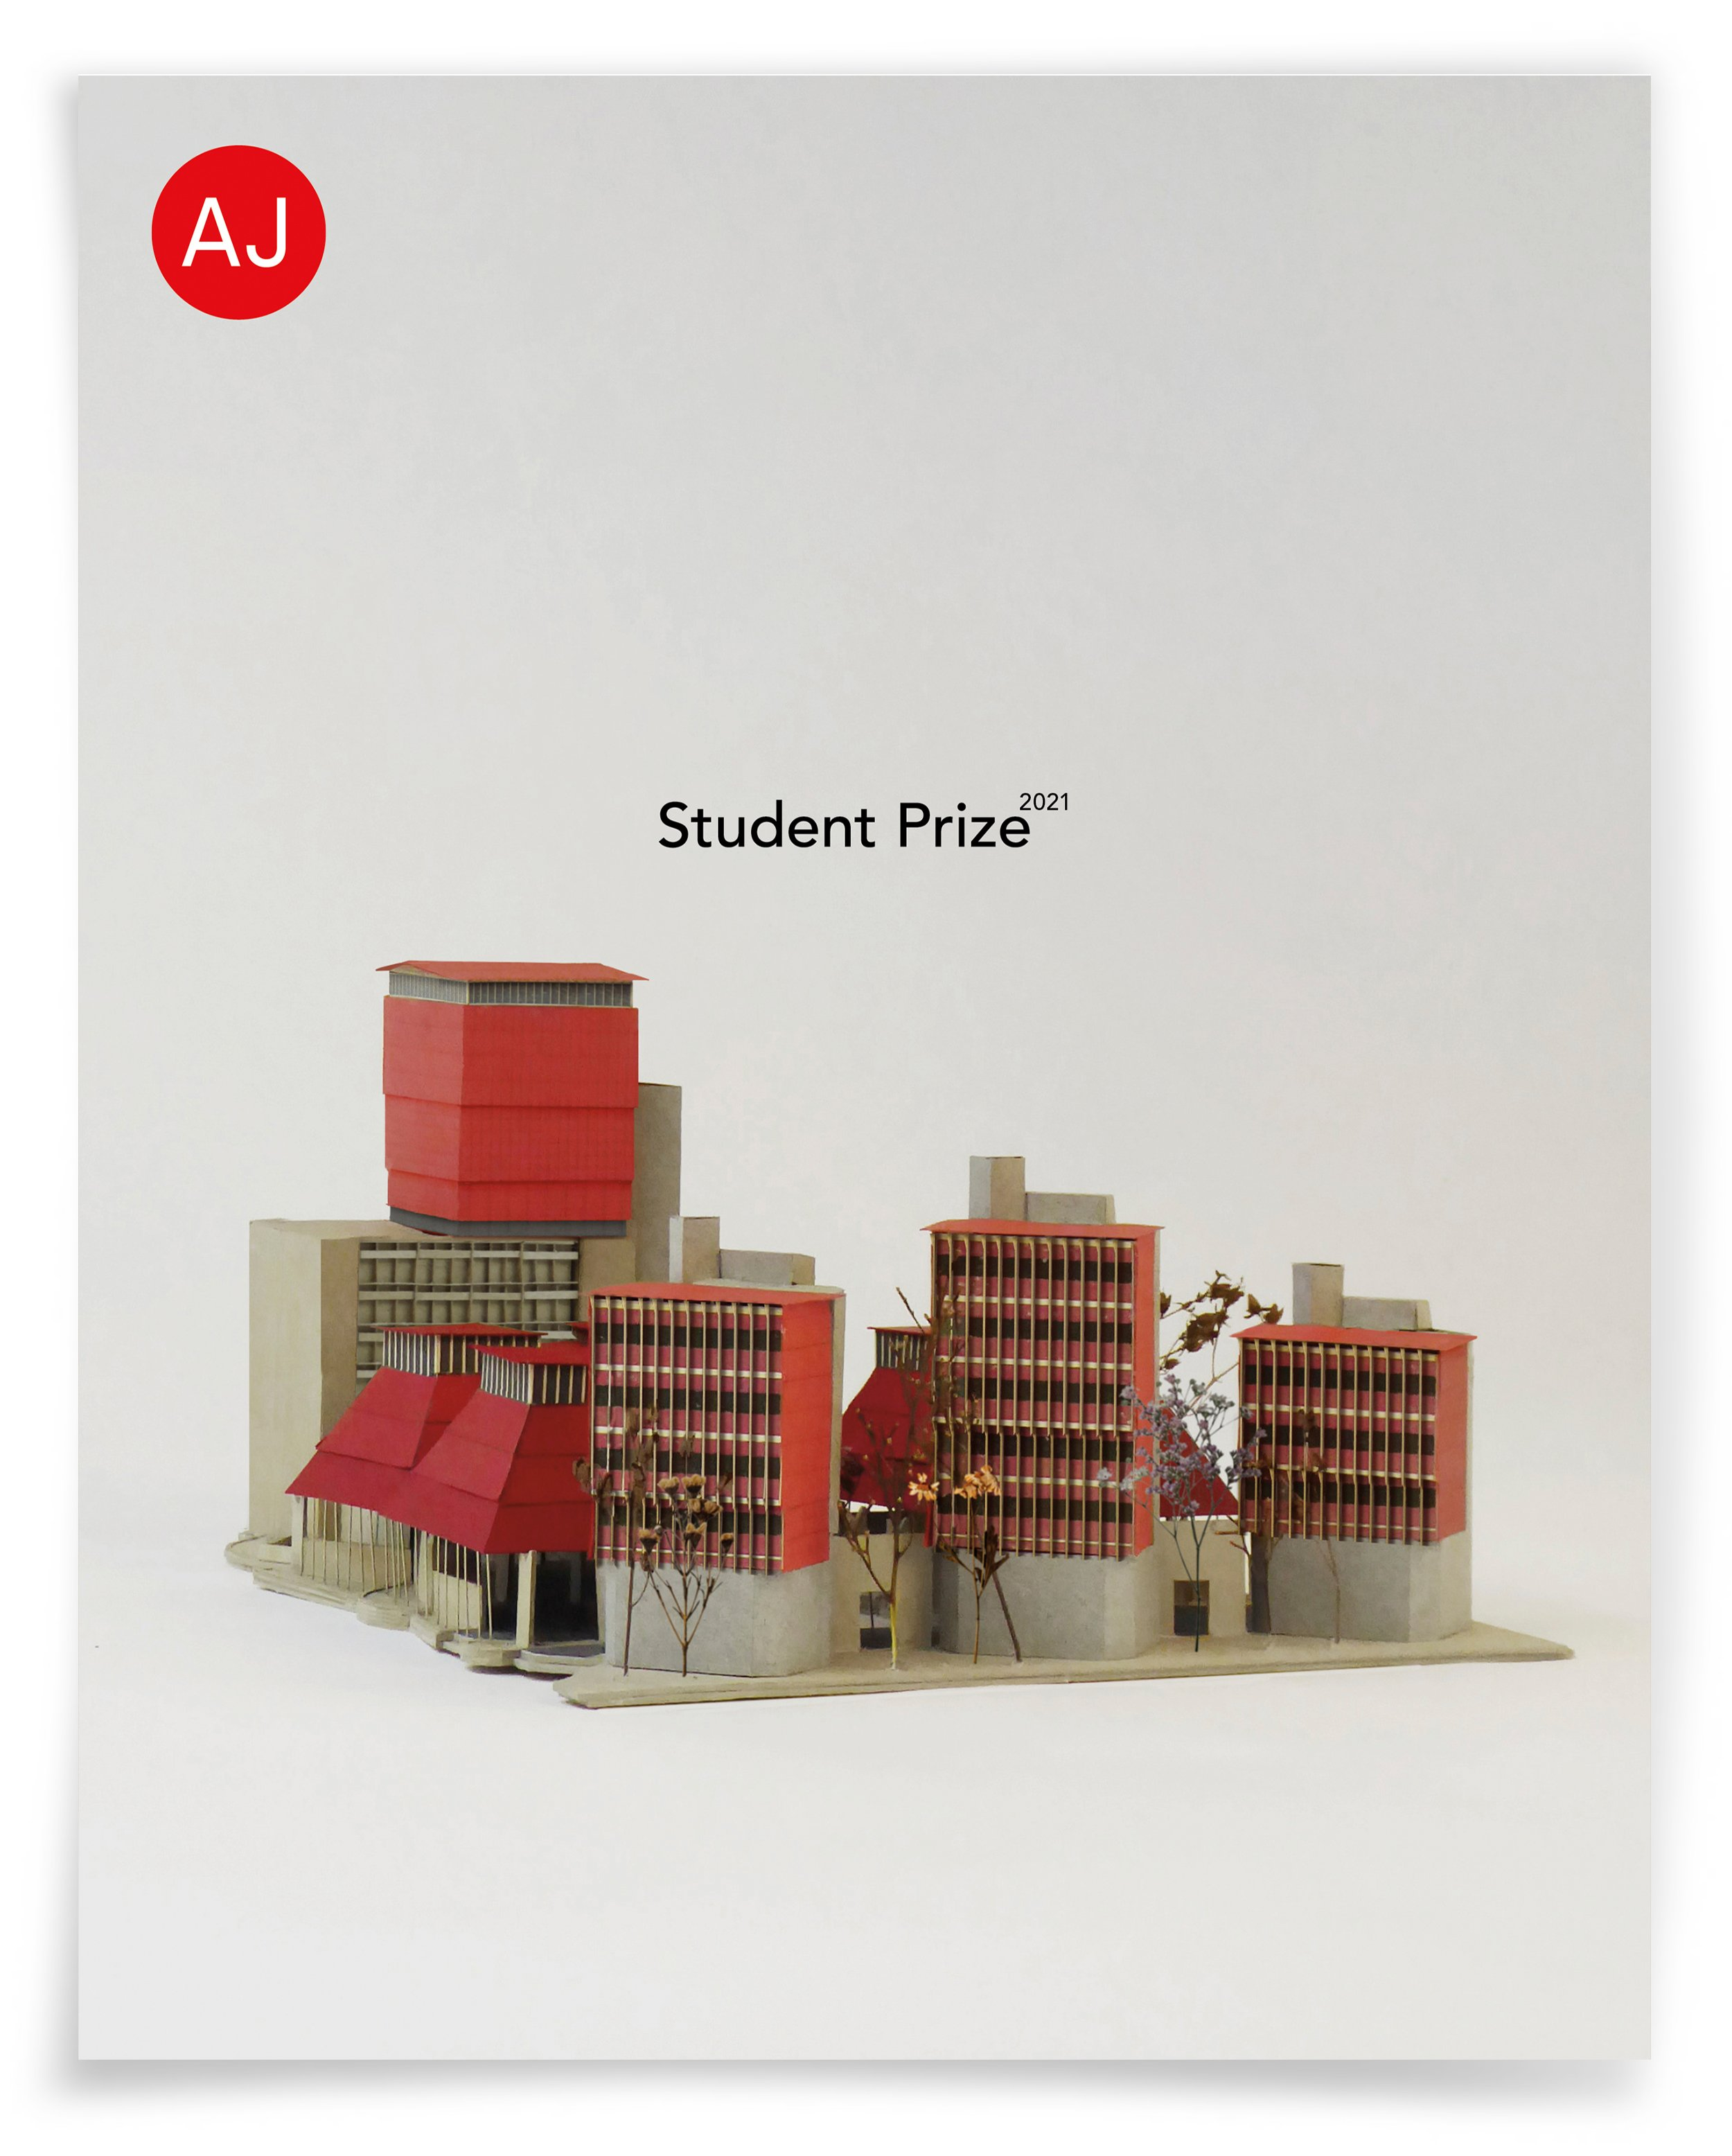 Student Prize 2021